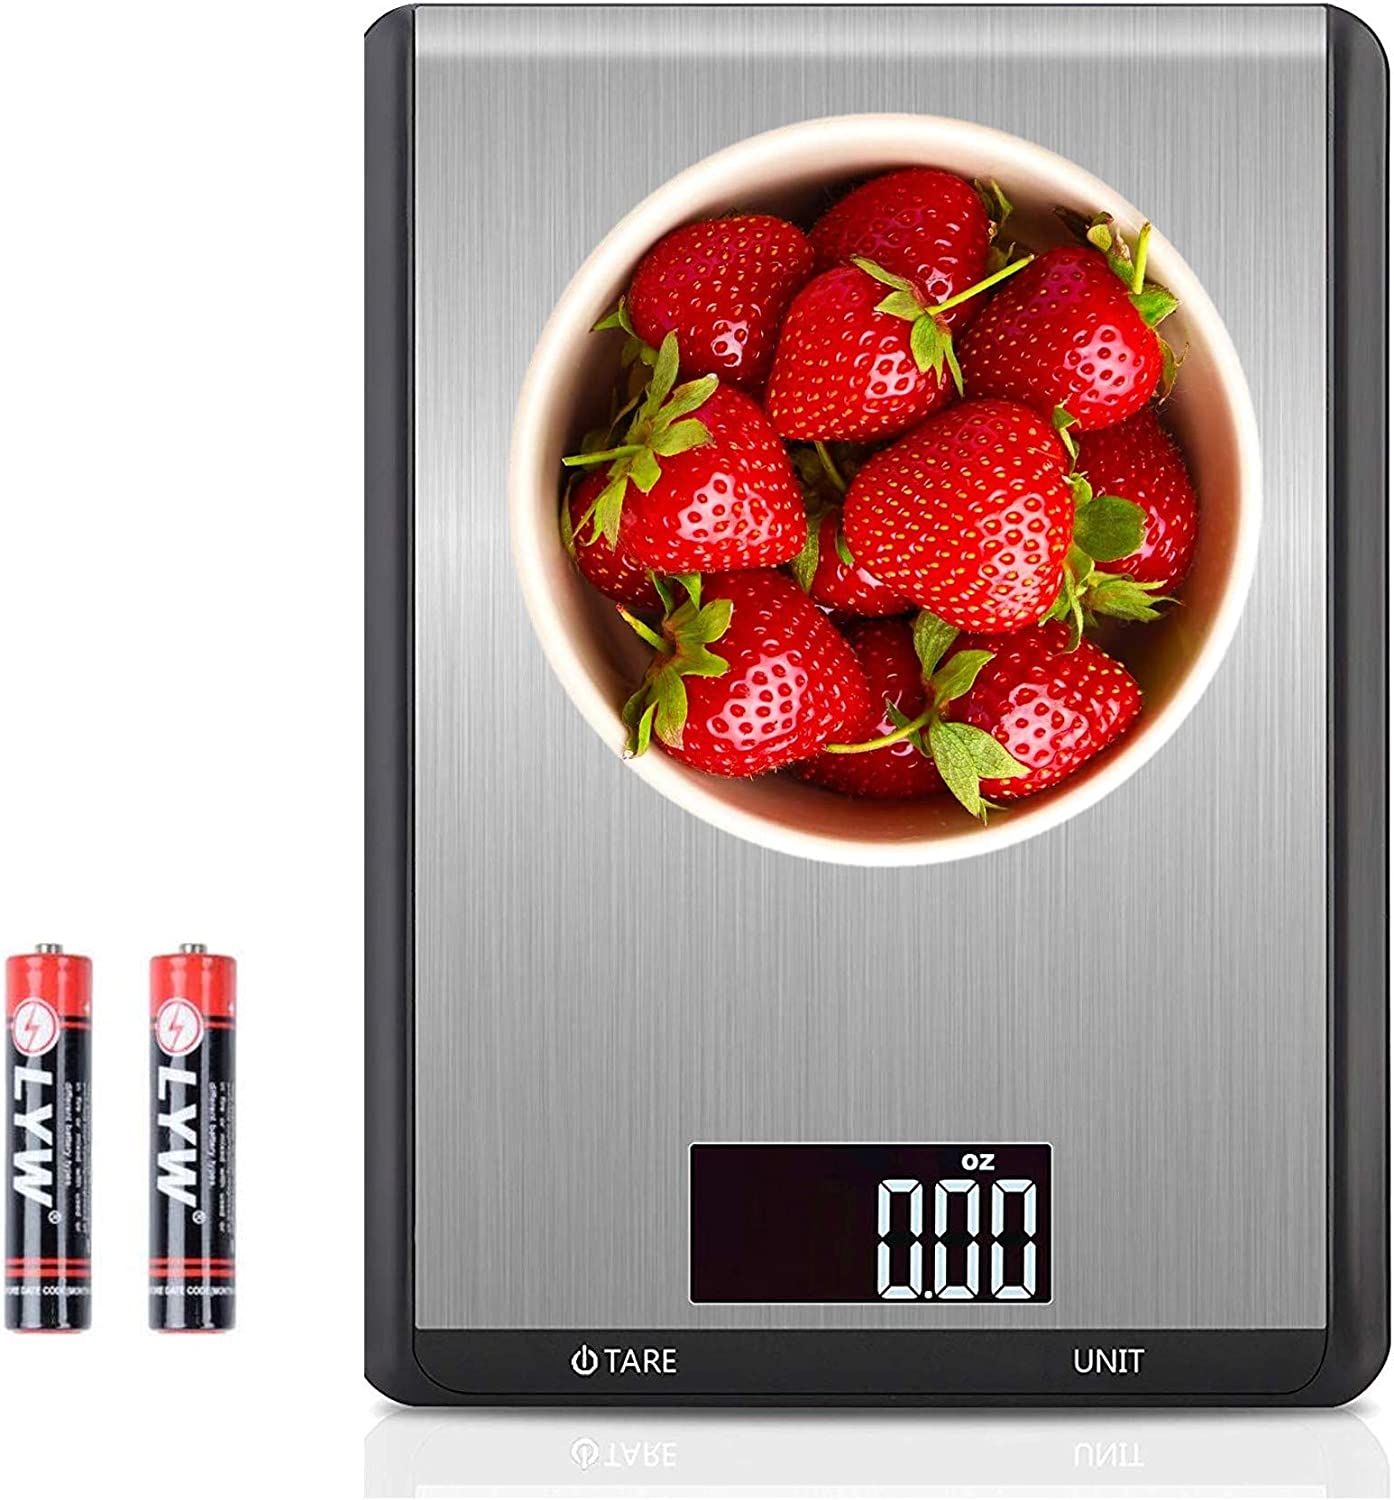 ANGOO Food Scales Digital Weight grams and oz, MAX 10 kg Digital Kitchen Scale, Cooking Scale, Baking Scale, Meat Scale